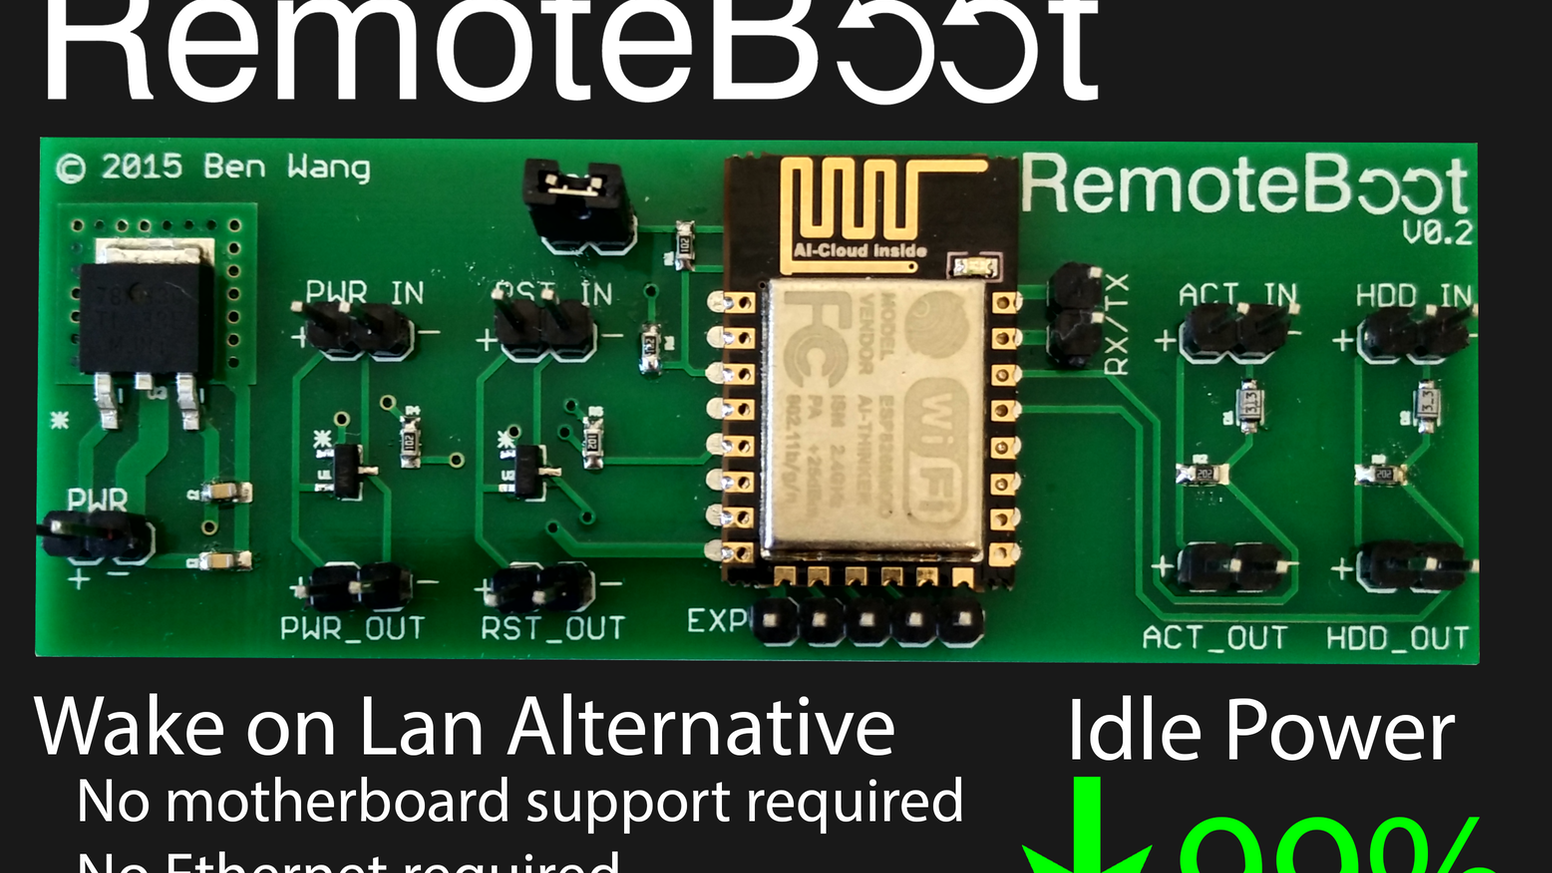 RemoteBoot - WiFi Remote Management Module for PCs by Ben